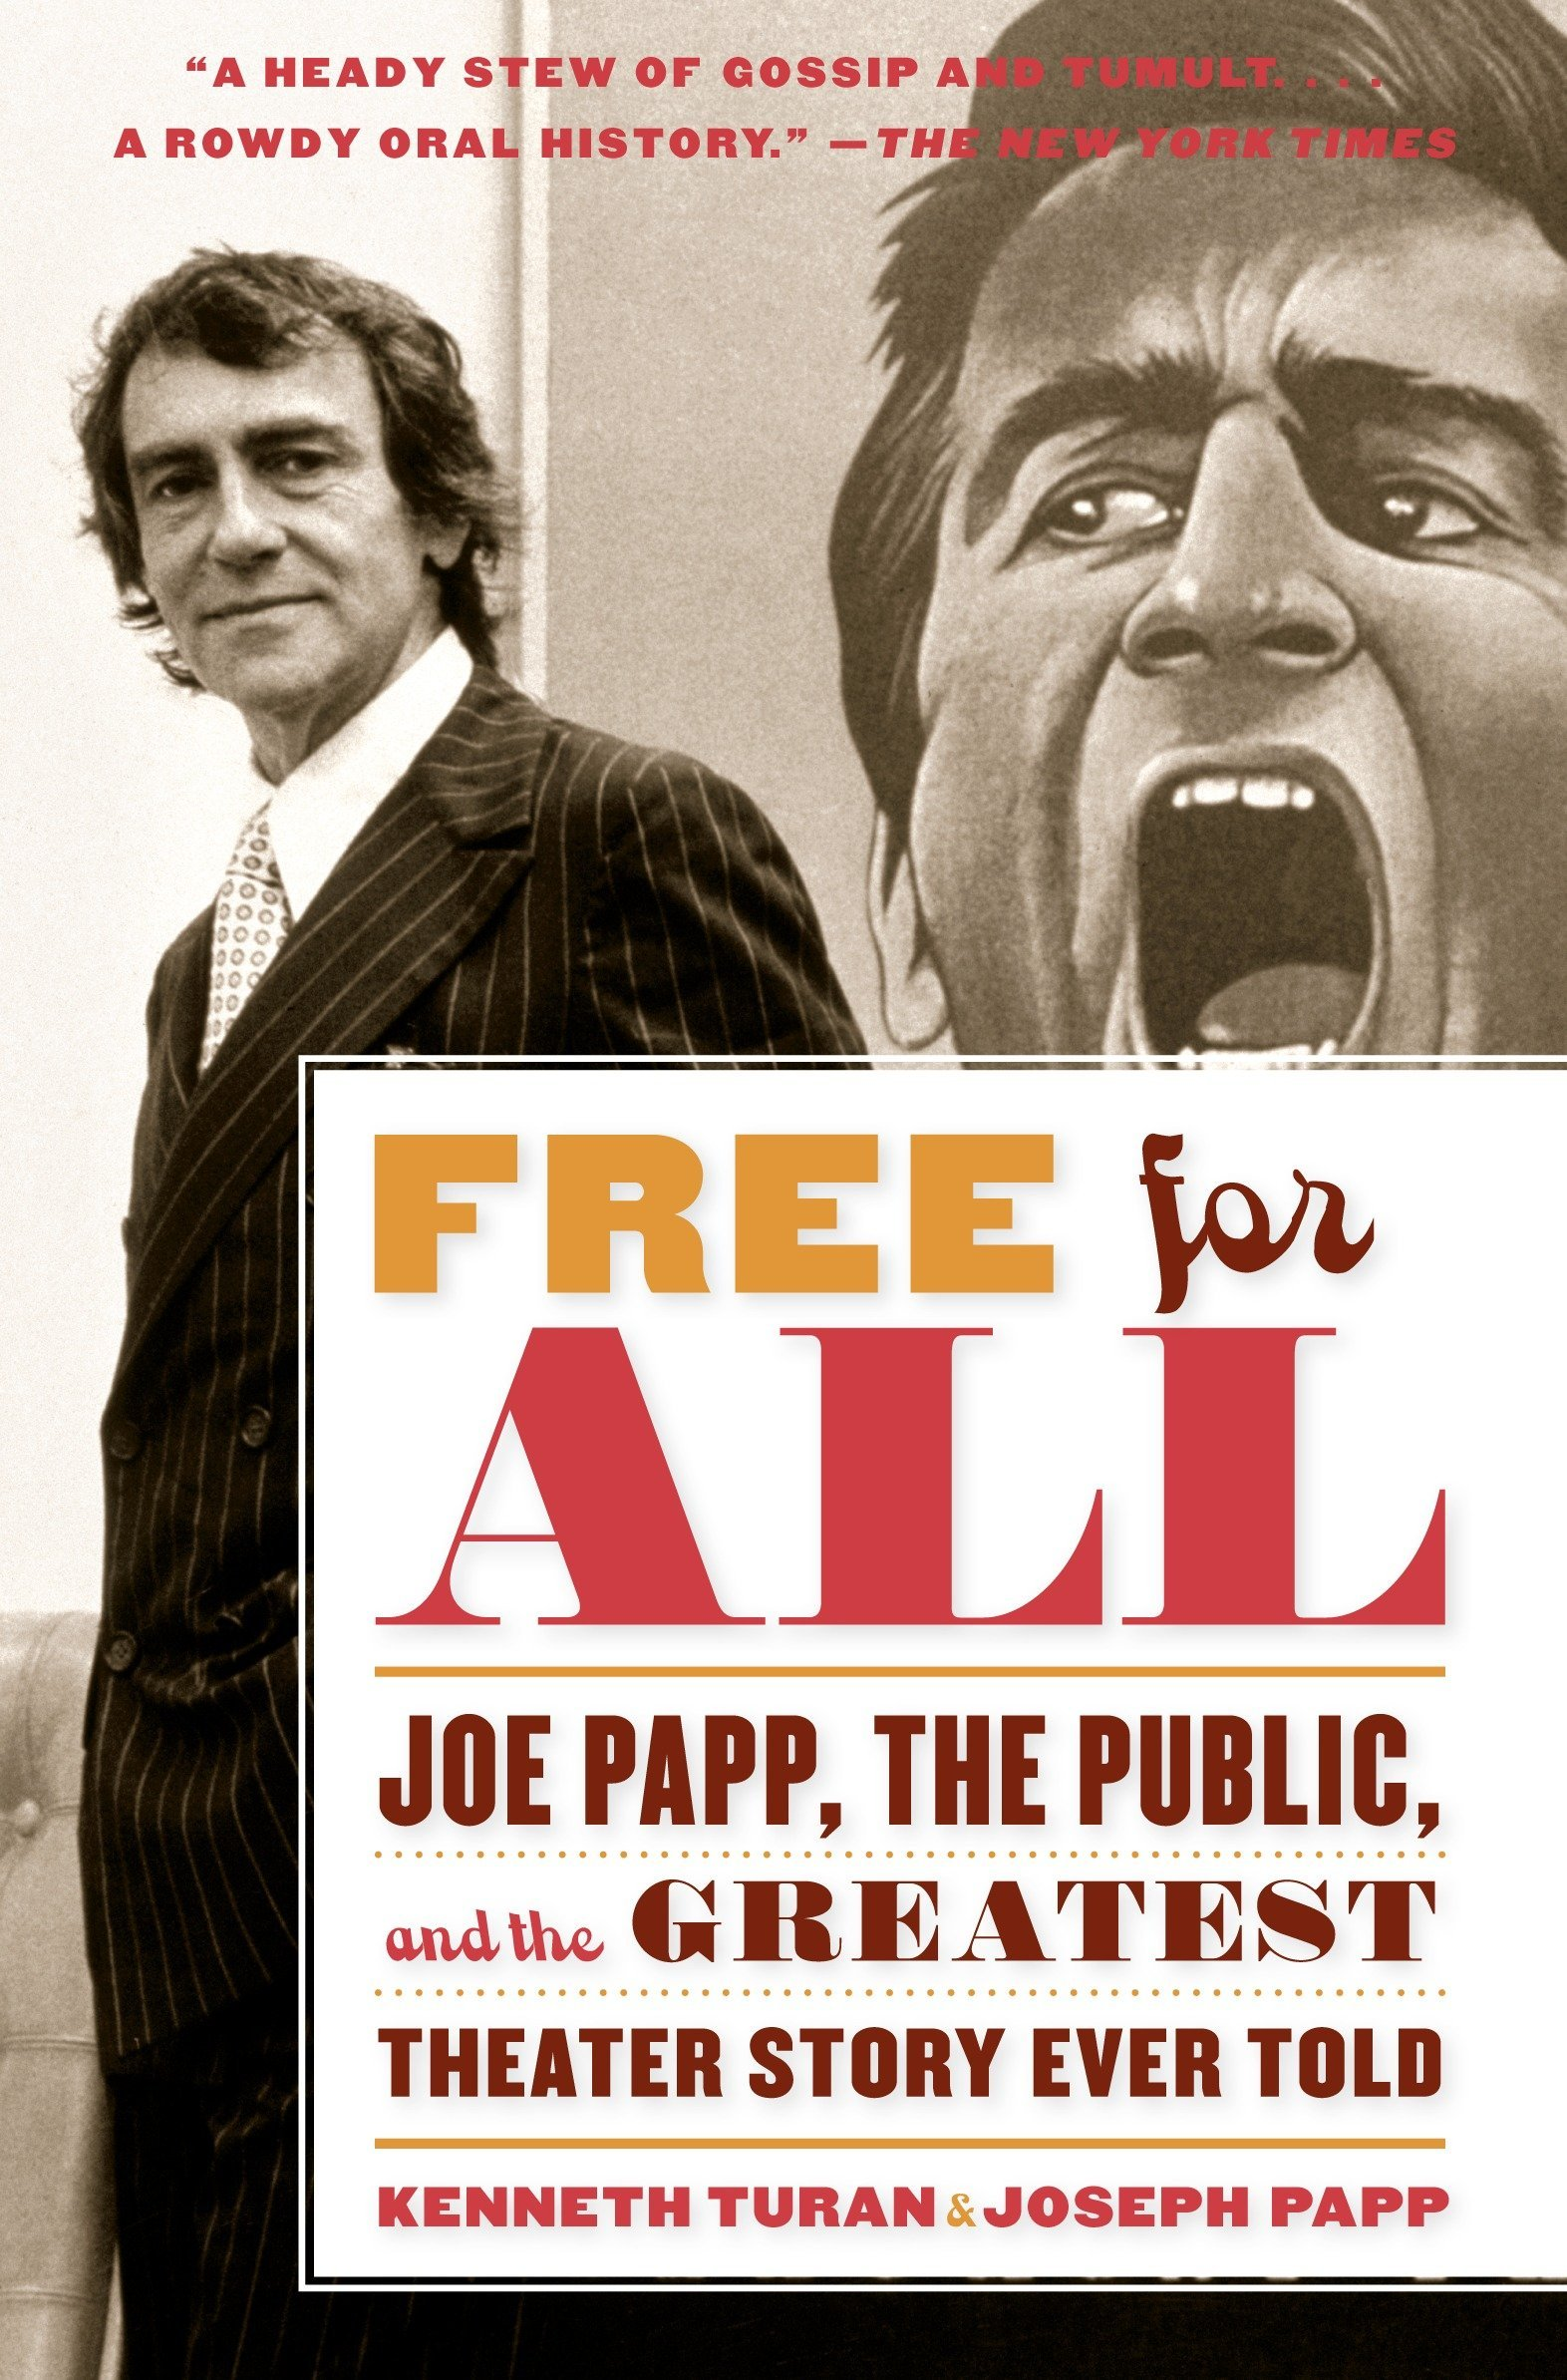 Download Free for All: Joe Papp, The Public, and the Greatest Theater Story Ever Told ebook